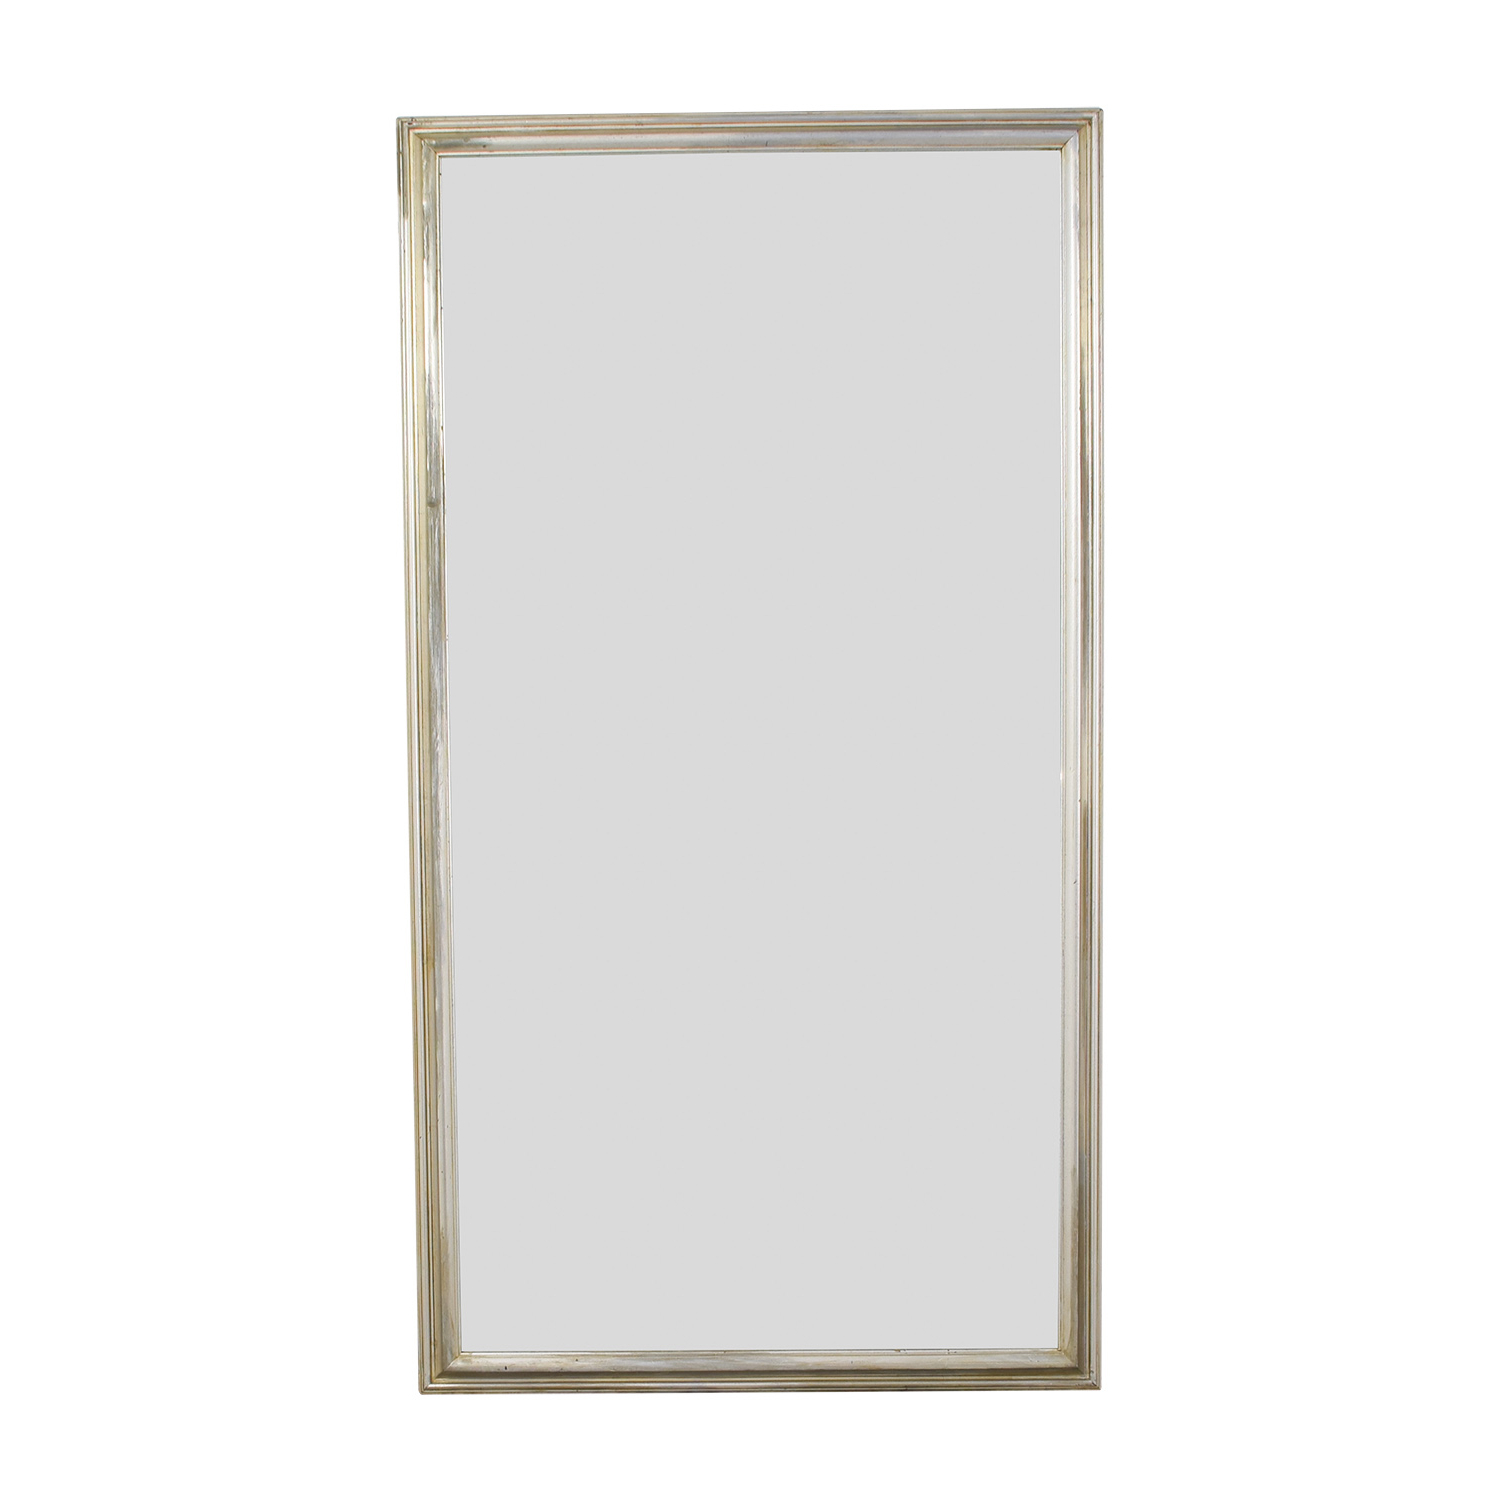 [%66% Off – Silver Leaf Frame Wall Mirror / Decor Within Well Known Silver Leaf Wall Mirrors|Silver Leaf Wall Mirrors Inside Trendy 66% Off – Silver Leaf Frame Wall Mirror / Decor|Popular Silver Leaf Wall Mirrors With Regard To 66% Off – Silver Leaf Frame Wall Mirror / Decor|2019 66% Off – Silver Leaf Frame Wall Mirror / Decor Throughout Silver Leaf Wall Mirrors%] (View 1 of 20)